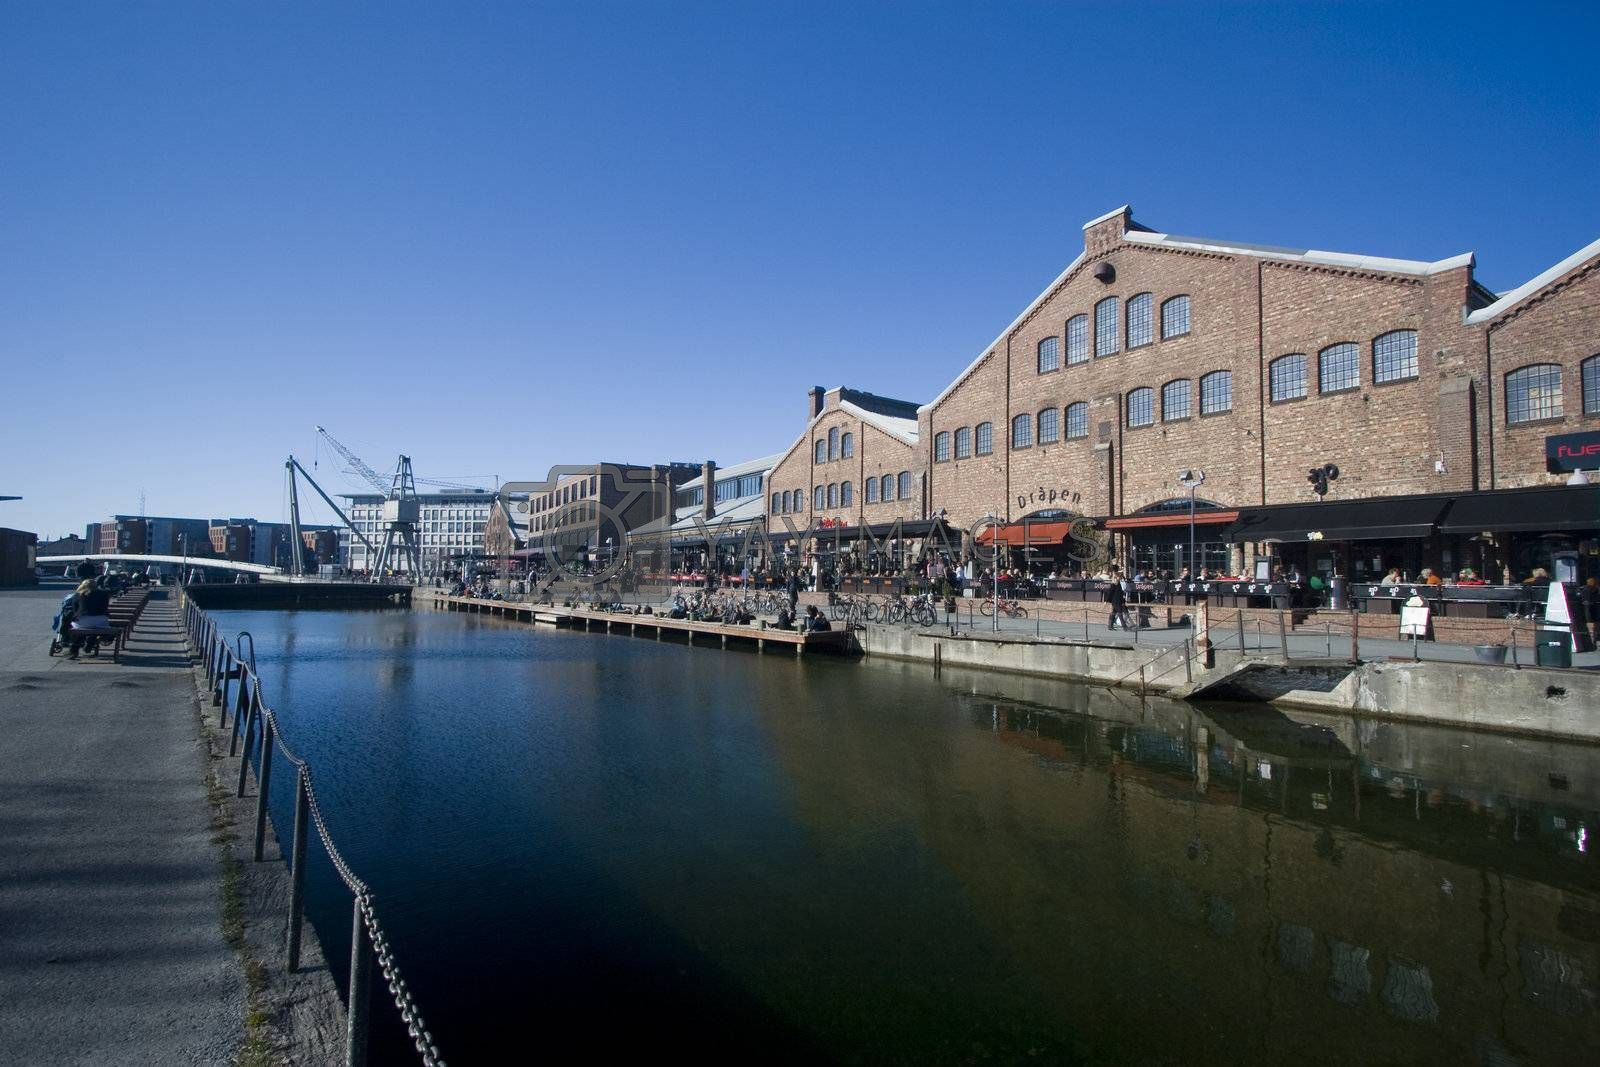 Solsiden, a modern recreational and business center in Trondheim, Norway.